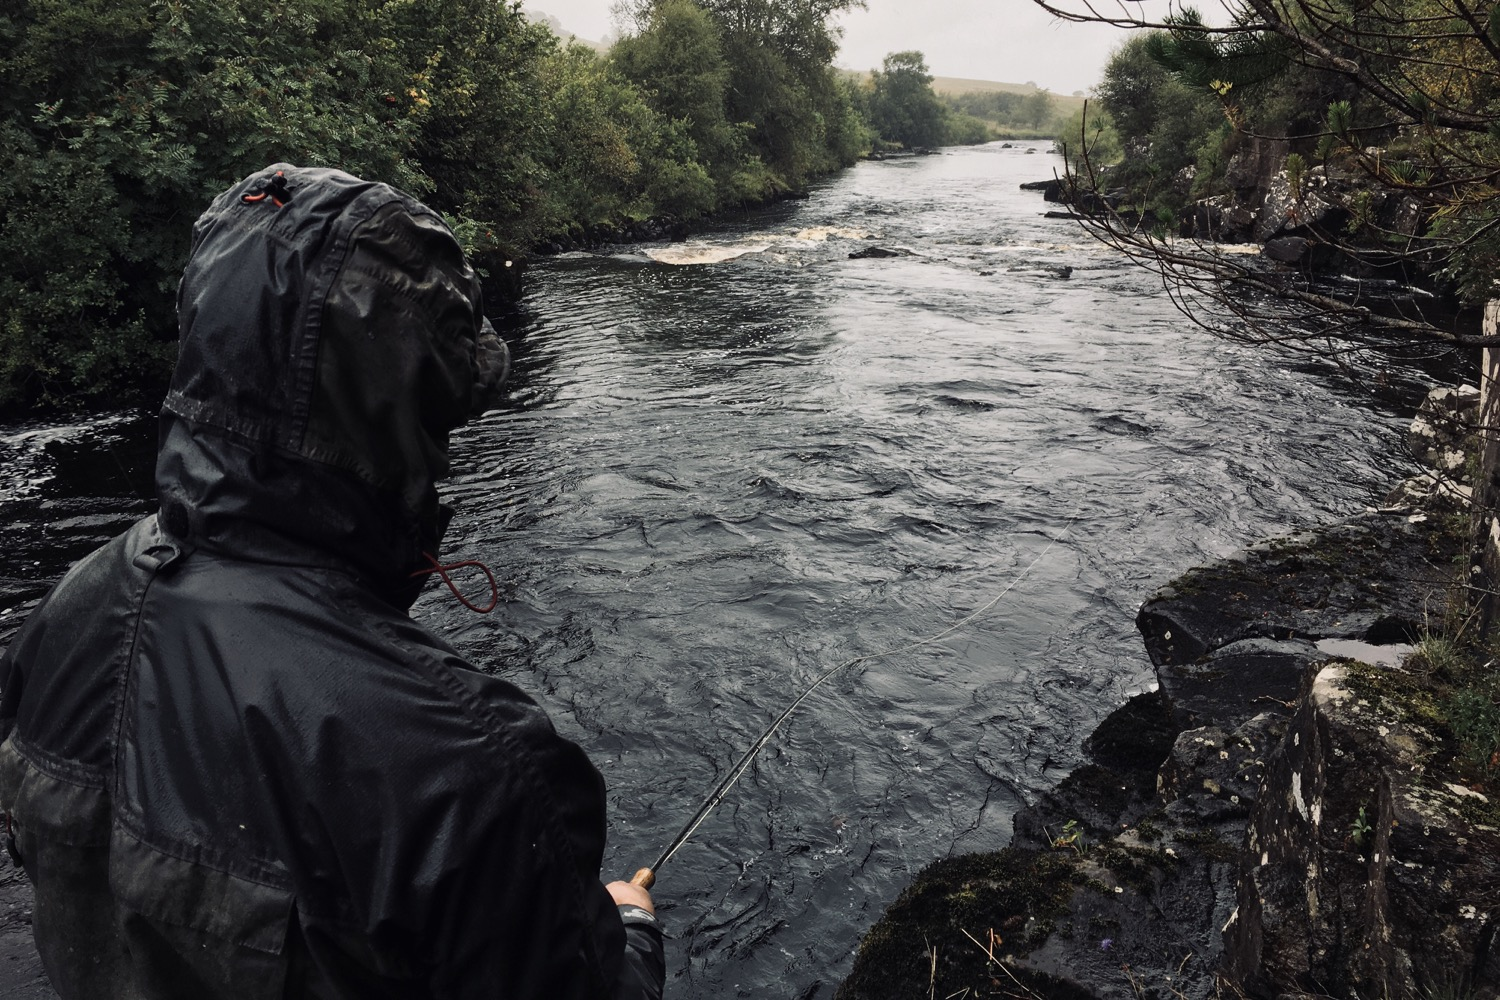 A rainy day on the river